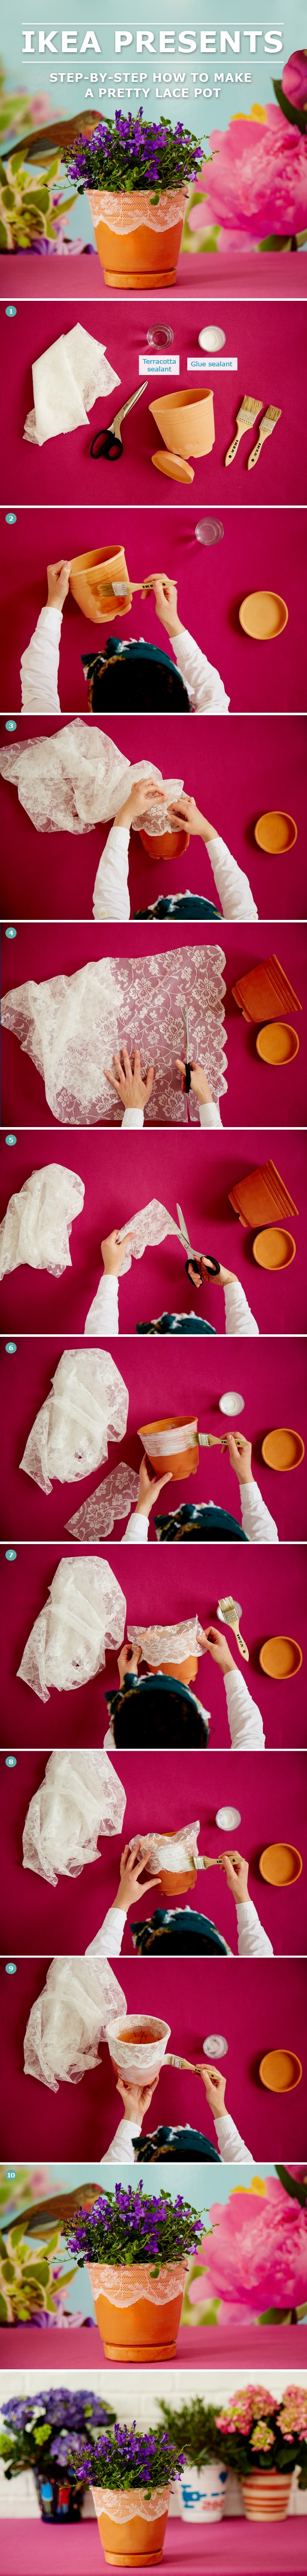 Personalise a FOTBLAD plant pot 1. Gather materials. 2. Seal pot and saucer. Allow to dry. 3. Measure length of lace against the pot. 4. Cut lace. 5. Then cut it in half. 6. Apply glue sealant to pot. 7. Add lace pieces to rim, smoothing them against the curved pot and overlapping the ends. 8. Start adding the final coat of glue sealant as you apply the lace. 9. Seal the whole pot once lace is in place. 10. Allow to dry before potting.